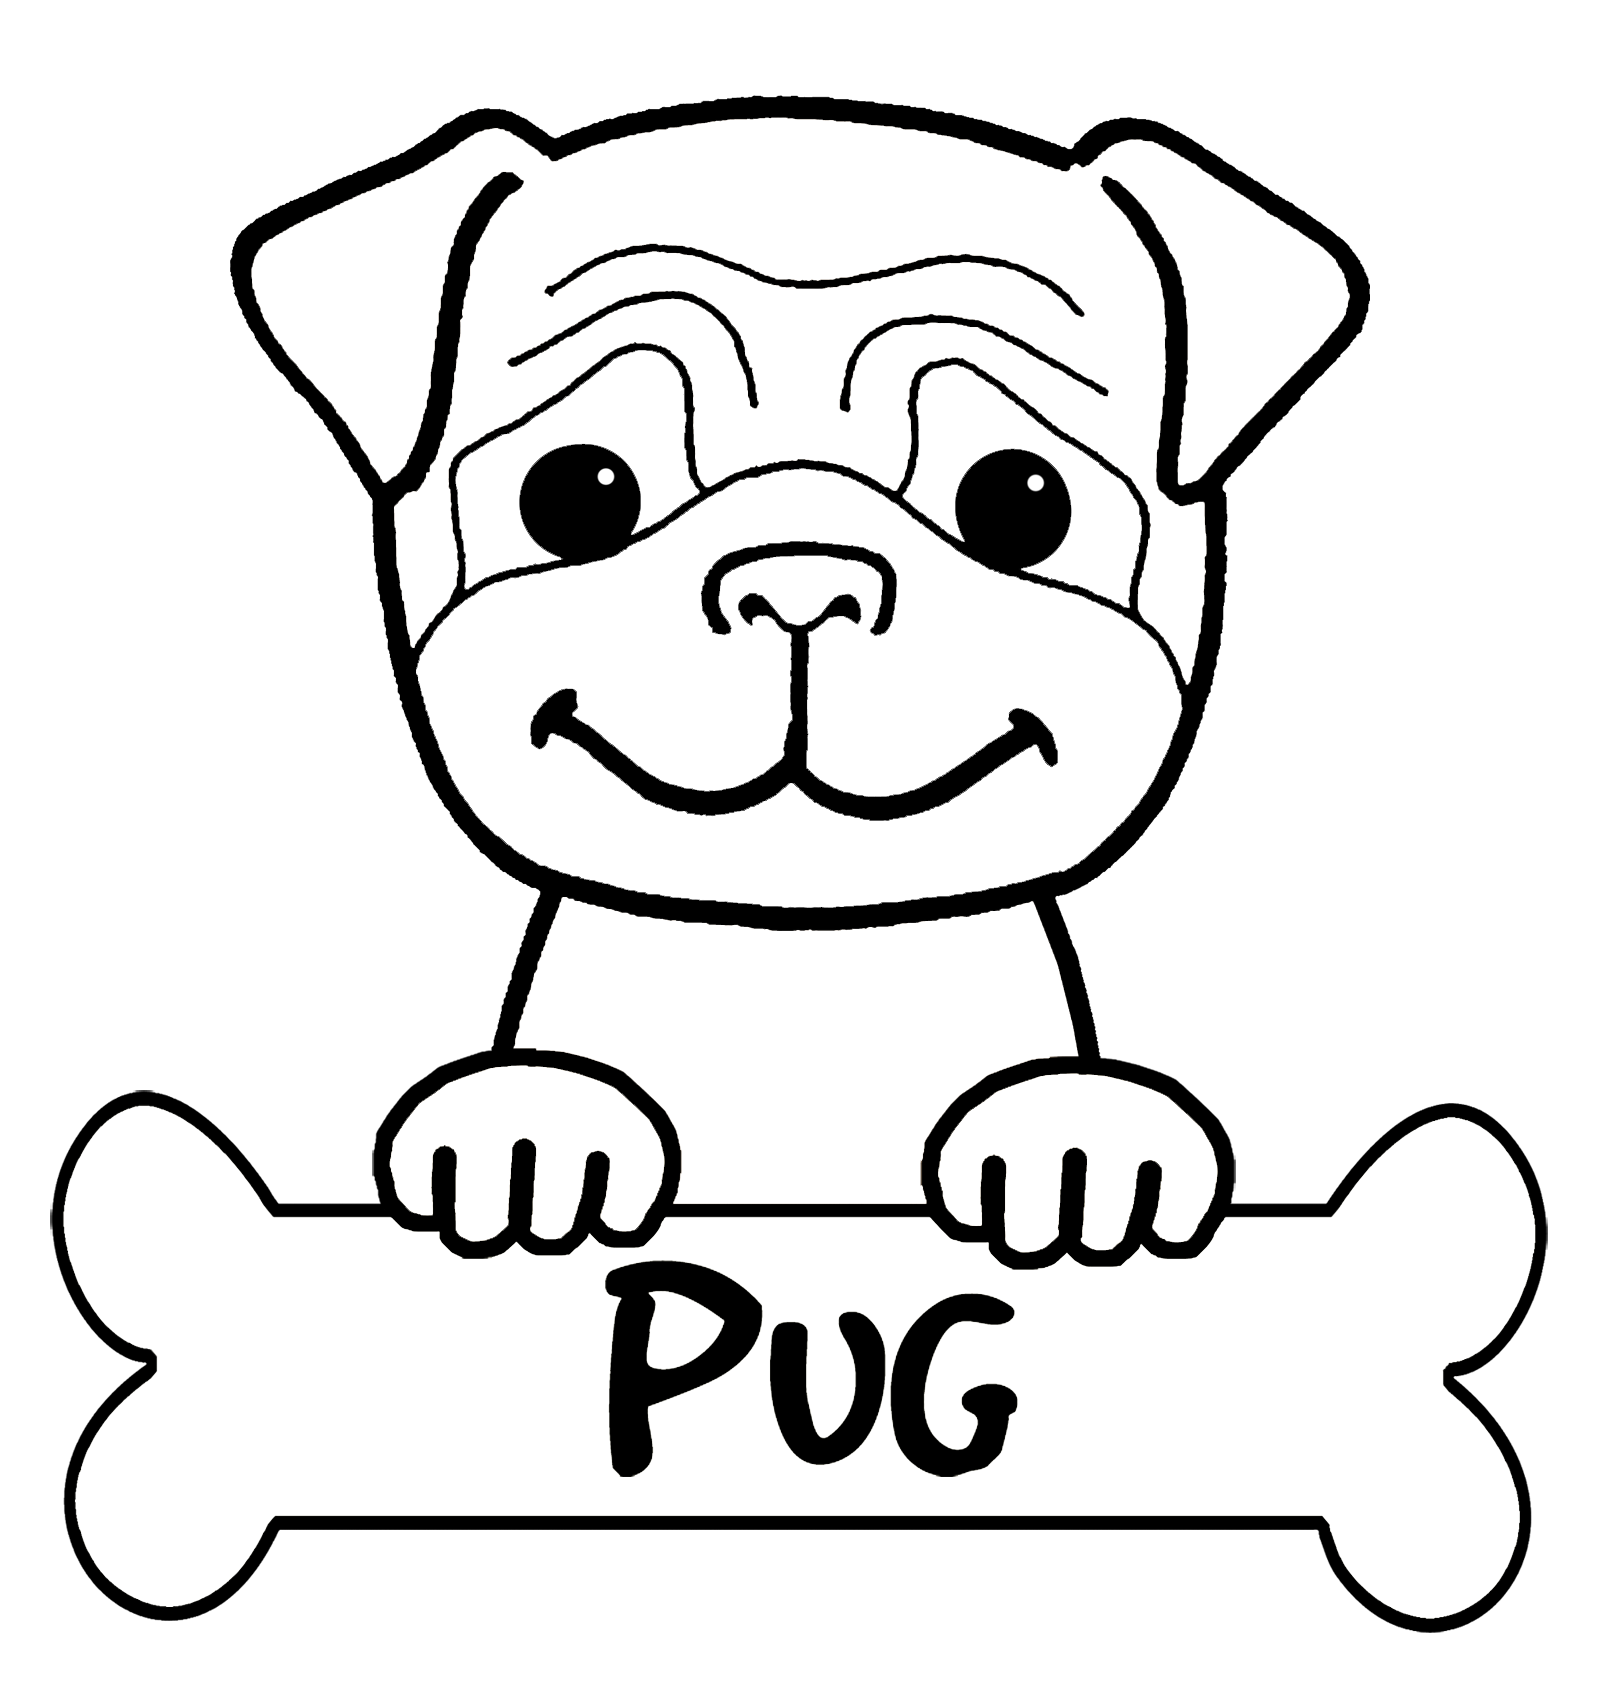 dogs to colour in and print dog to download for free dogs kids coloring pages in to dogs and print colour